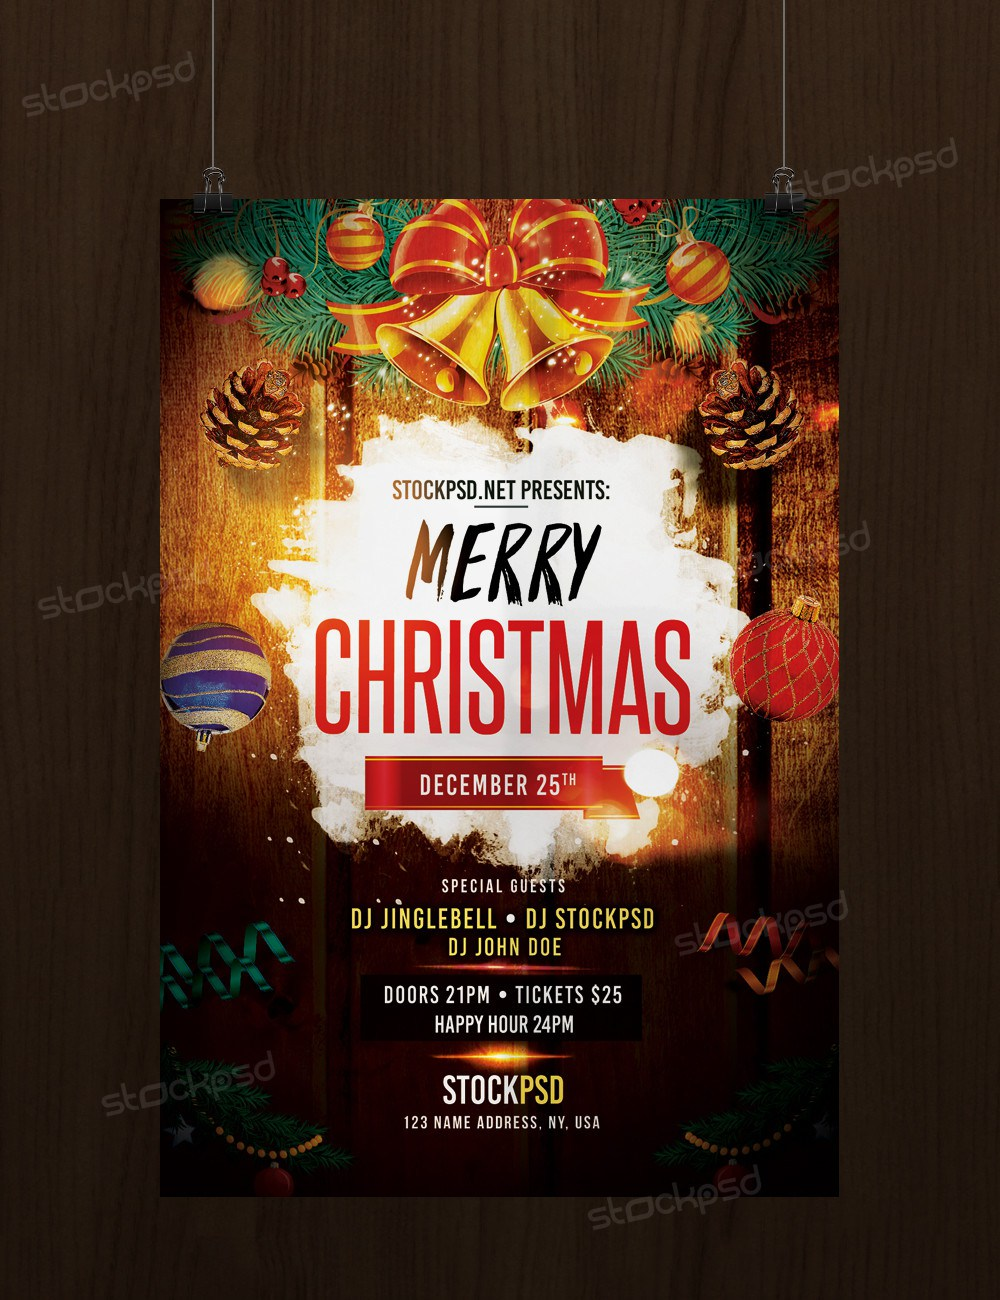 Download Merry Christmas Free Psd Flyer Template Freebiedesign